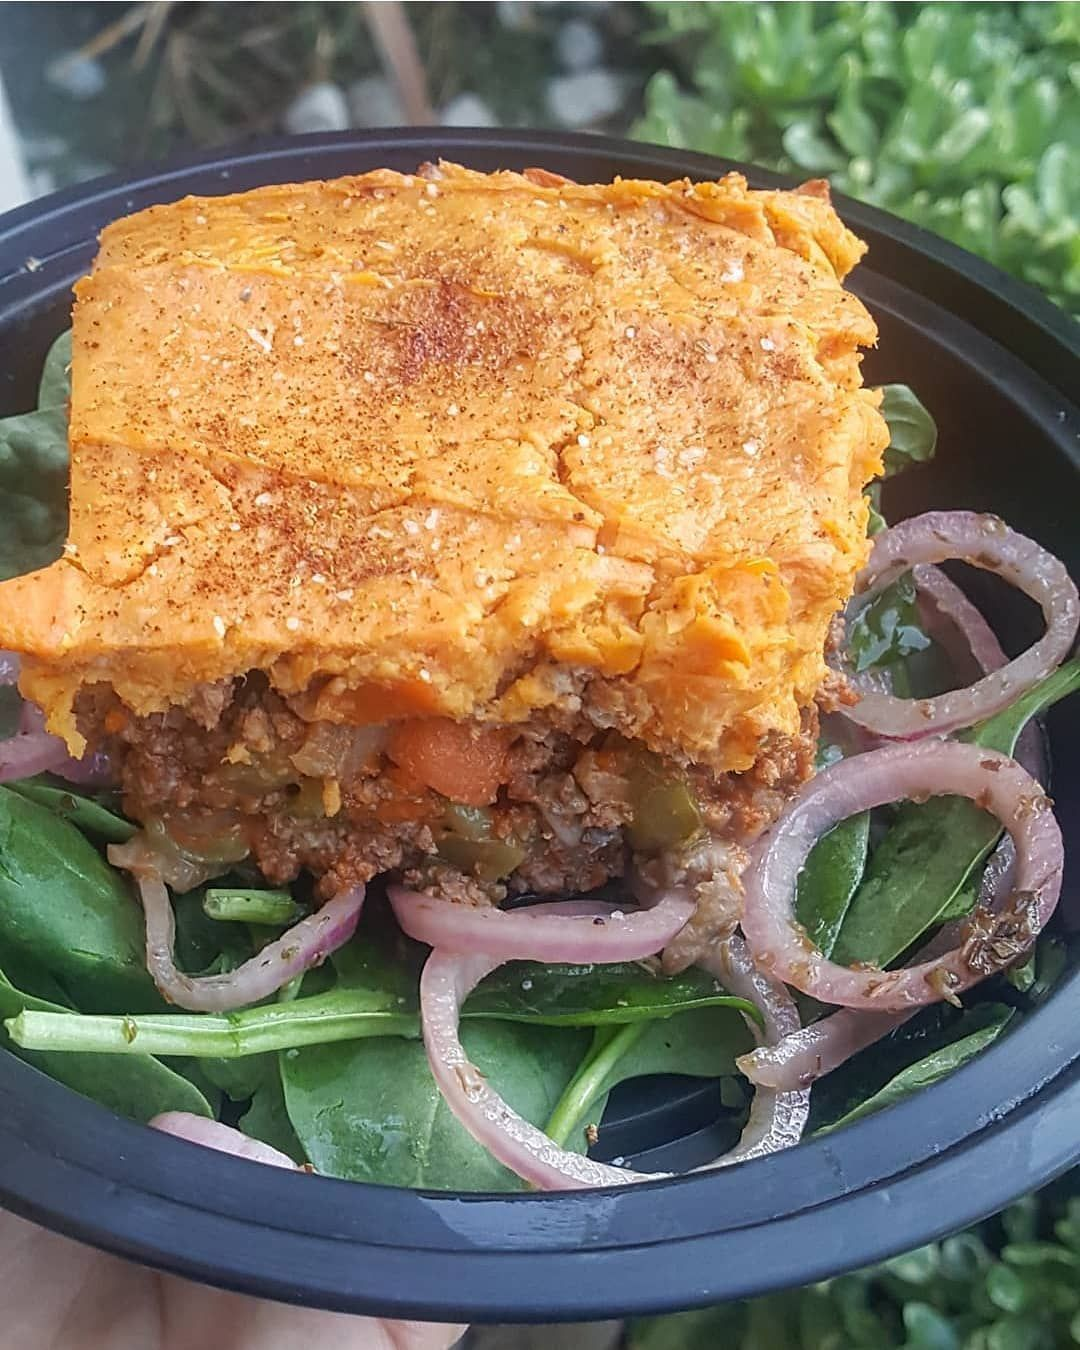 Lunch was leftovers from yesterdays Shepard pie with sweet potato filling by @therealfoodrds.  This is a must try recipe.  It is honestly one of my favorite go to meals.  I always double the recipe so I can have plenty of leftovers for the week.  I sat mine on a bed of spinach and marinated onions for some extra vegies.  #whole30approved . . . . . . . . . . . . . . . . . . . #lunch #shepardpie #shepardspie #sweetpotato #healthy #healthierme #healthylifestyle #weightloss #weightlossjourney #weigh #shepardspie